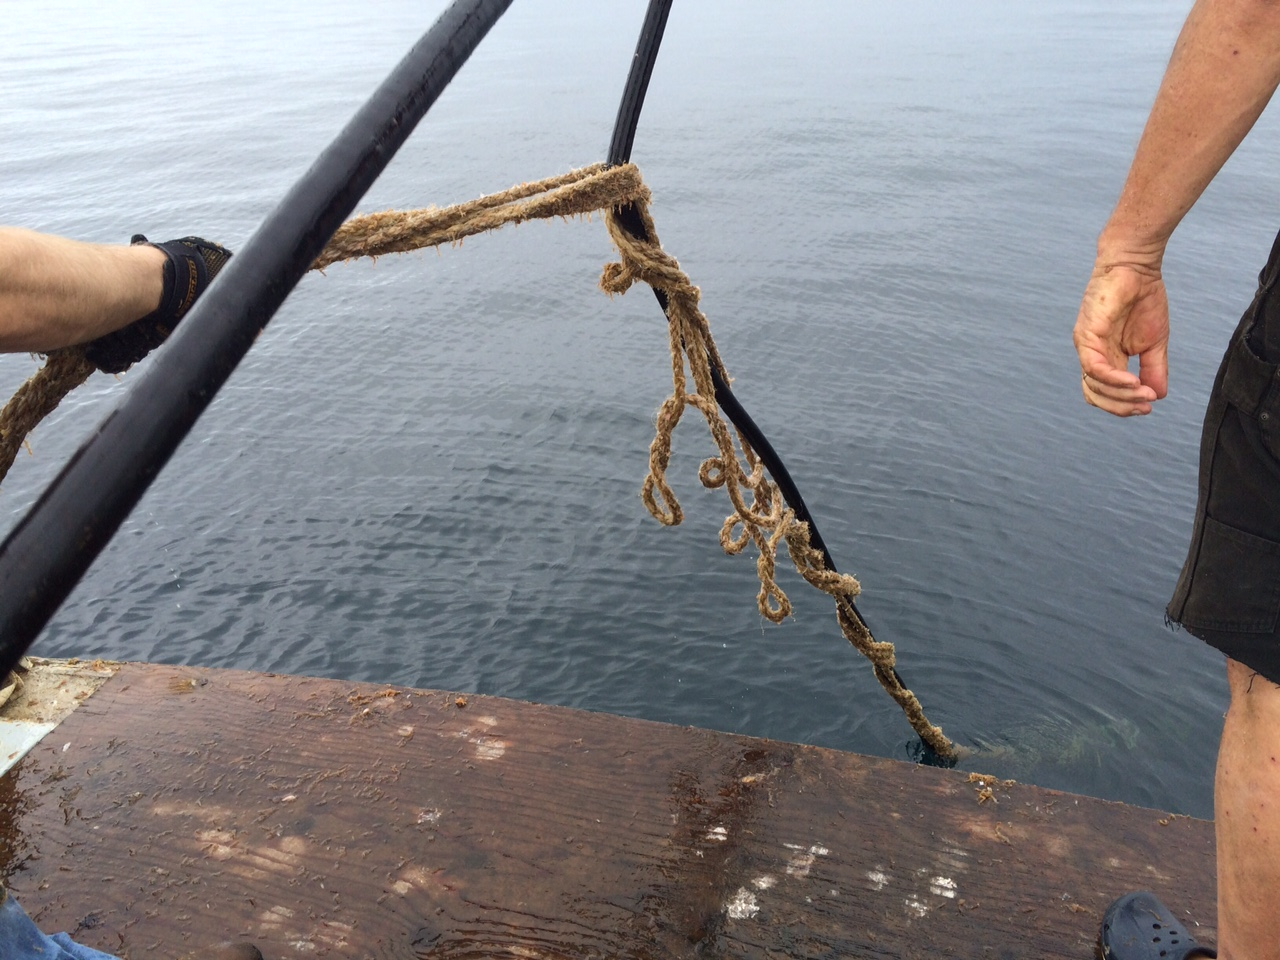 Trying to separate entangled moorings